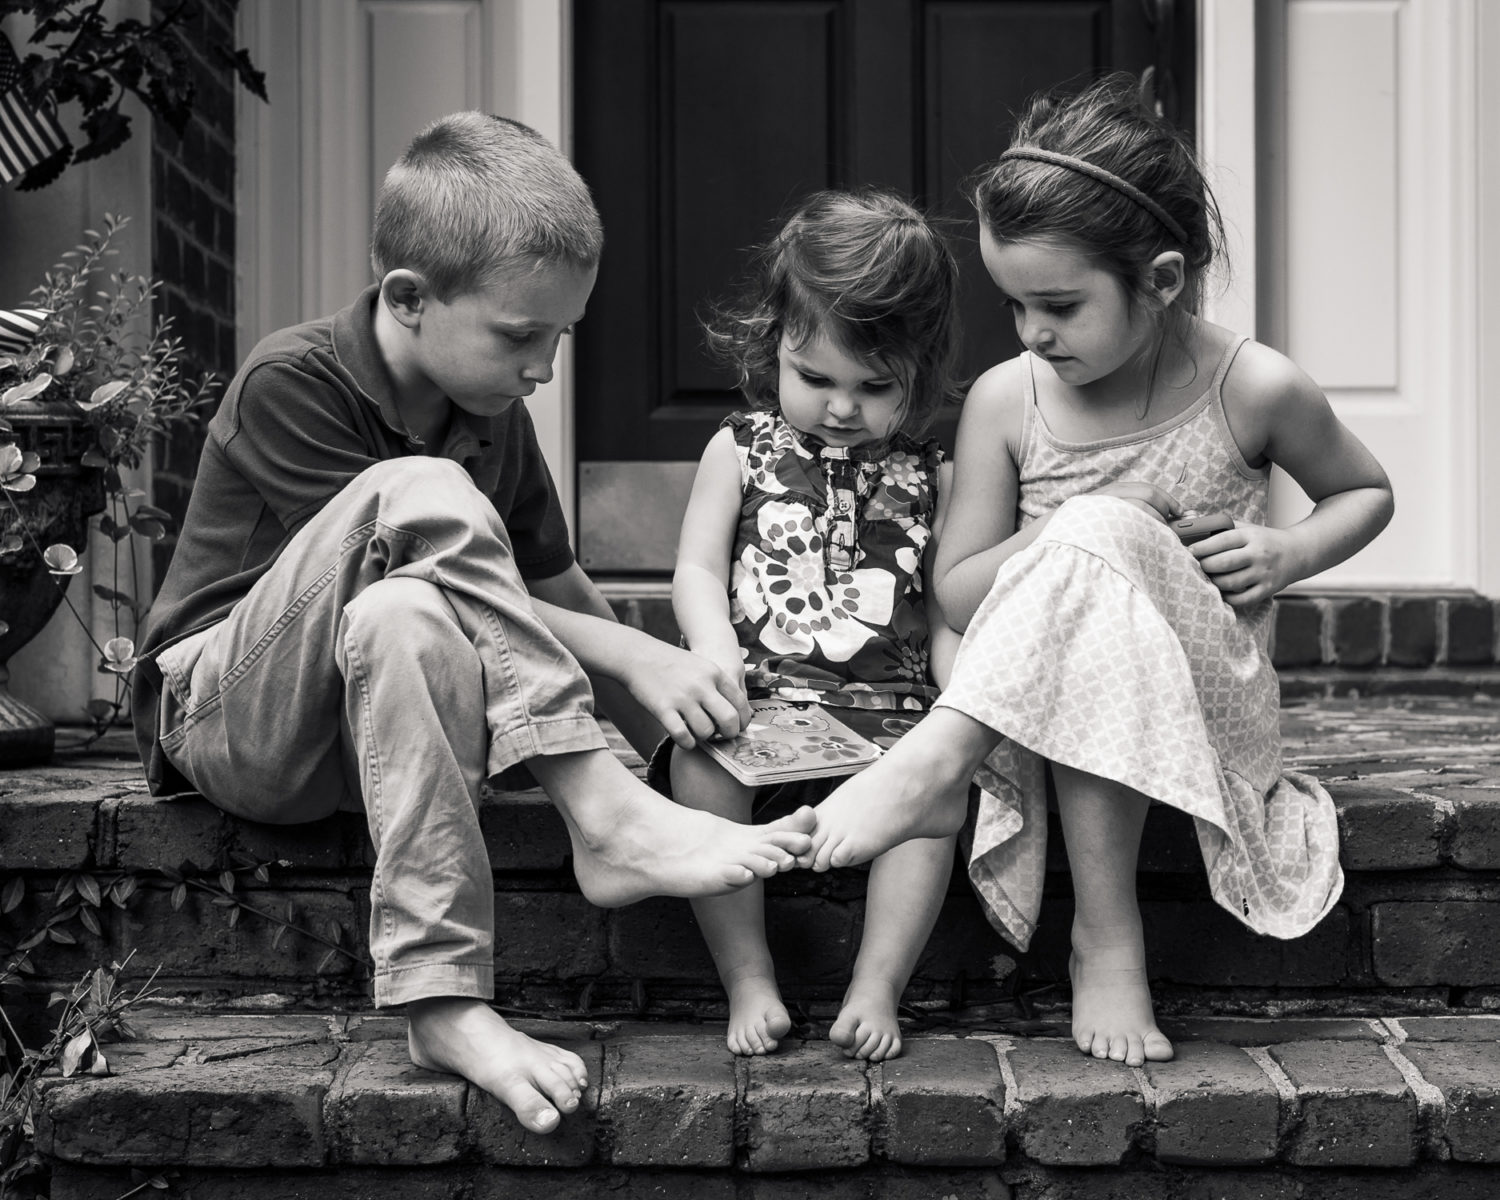 brother and sisters sitting on a front porch together